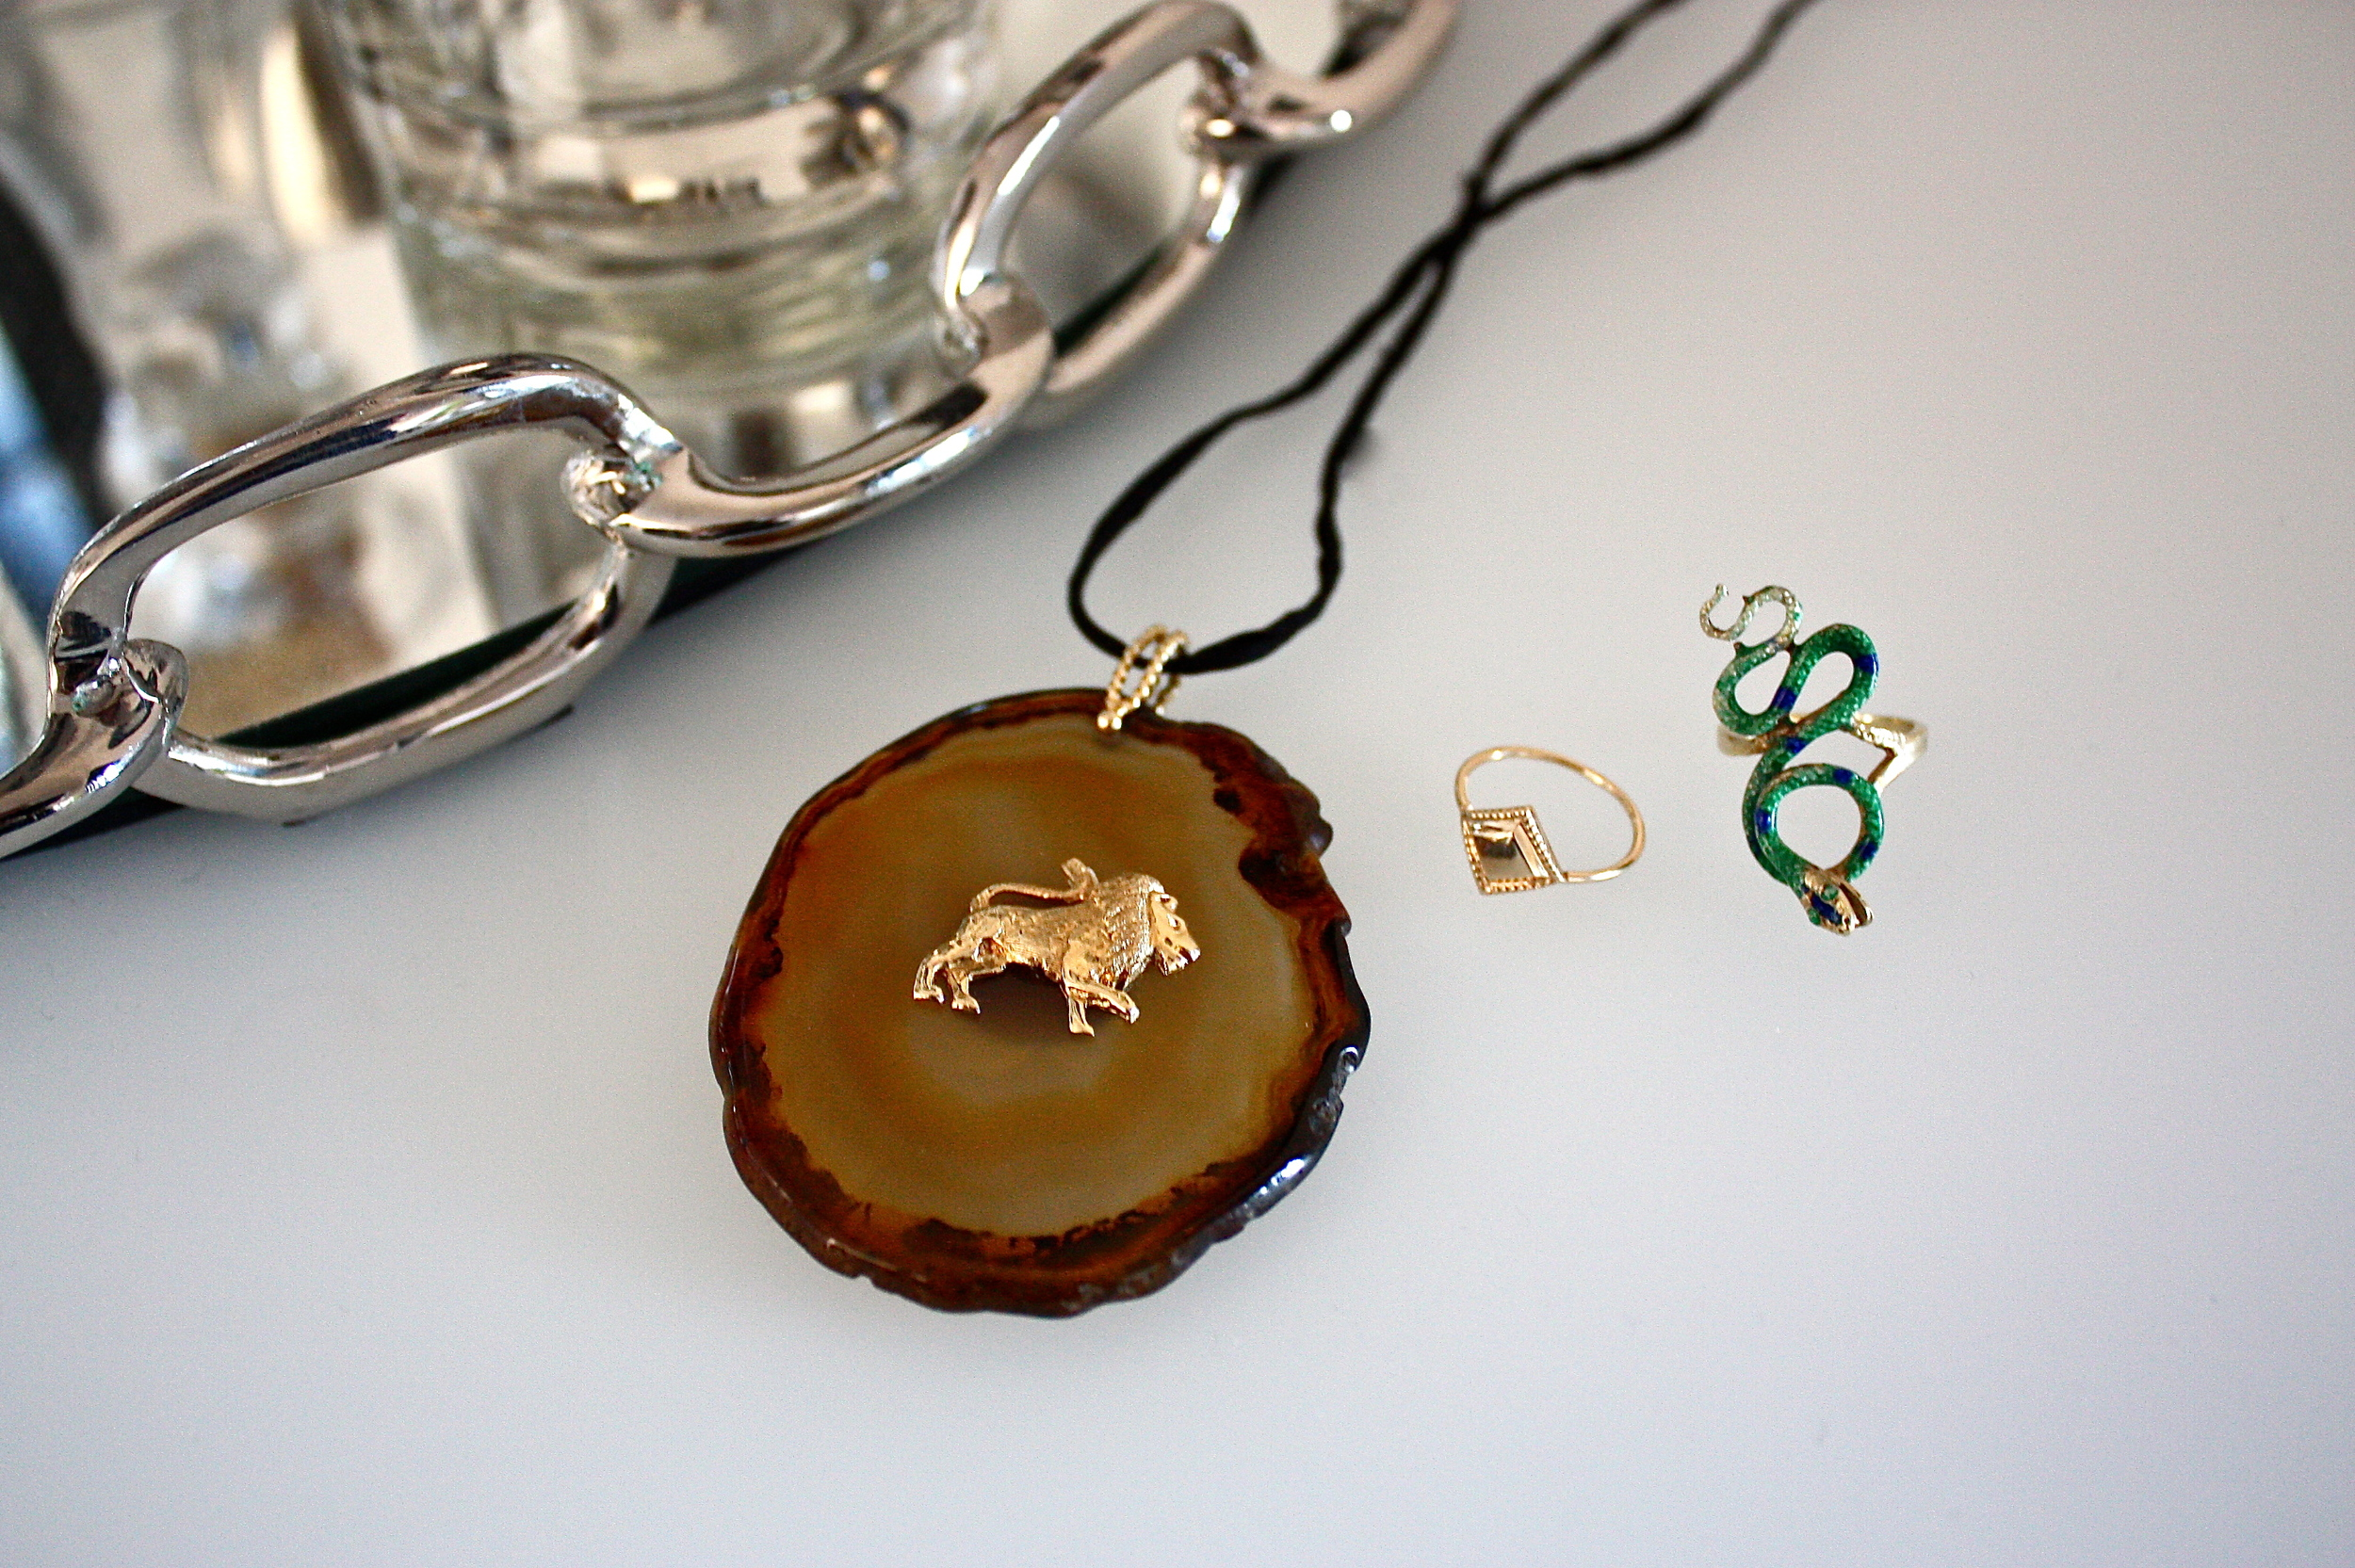 Vintage finds from Levy Jewelers